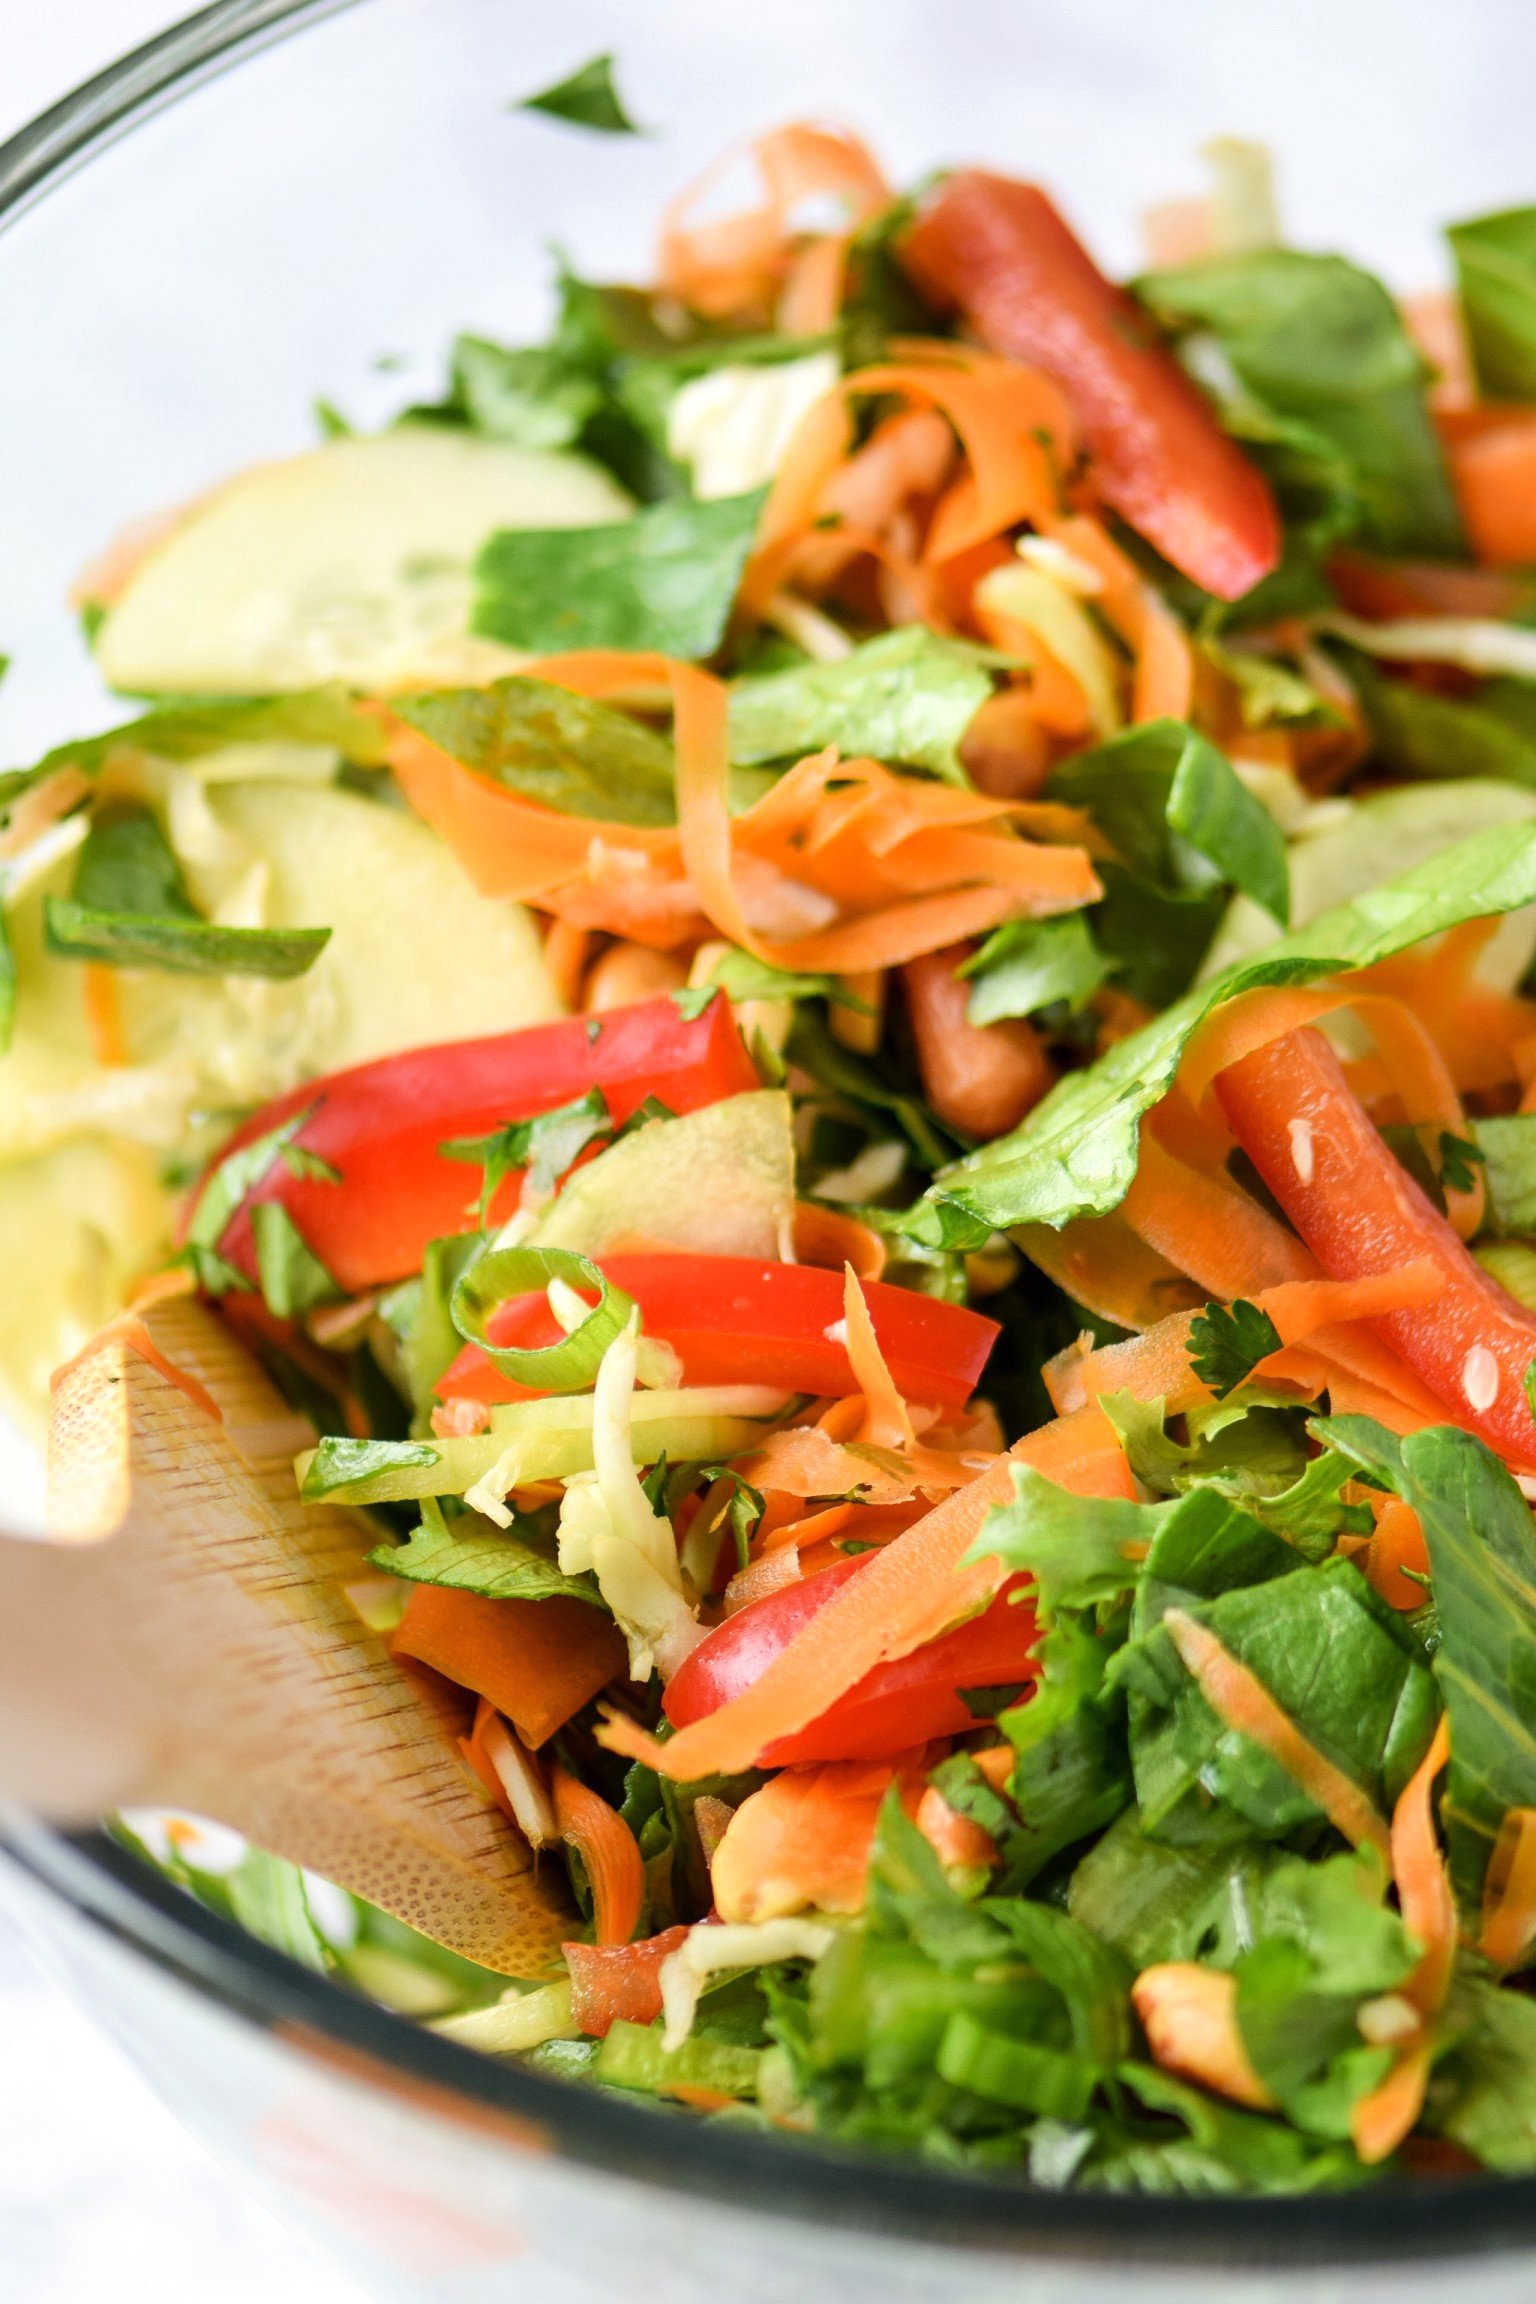 Colorful thai inspired salad with romaine, cilantro, bell peppers, carrots and cucumber.